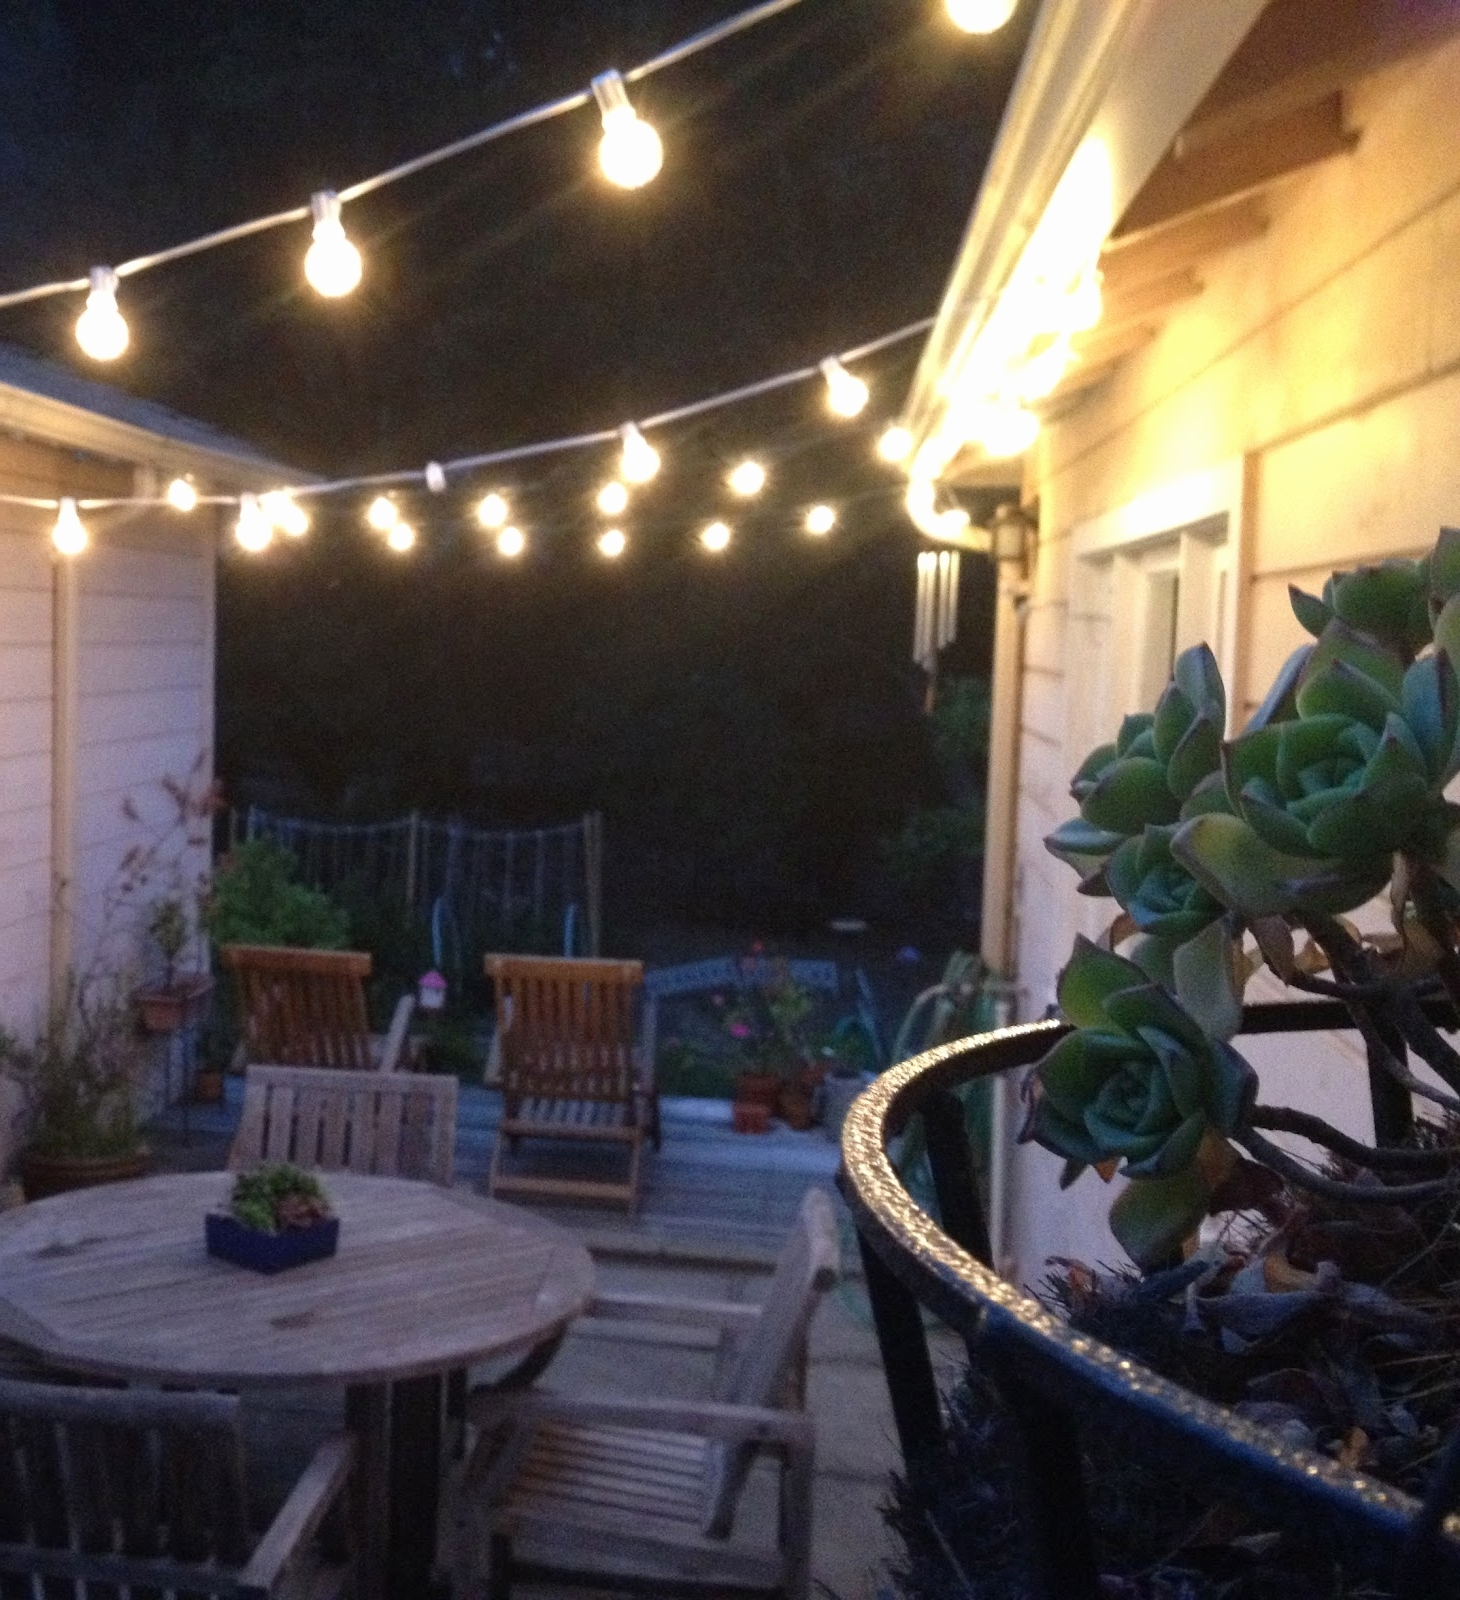 Well Known Garden String Lights Home Depot Awesome Amazon 25 Foot G50 Patio Intended For Hanging Outdoor String Lights At Home Depot (View 19 of 20)